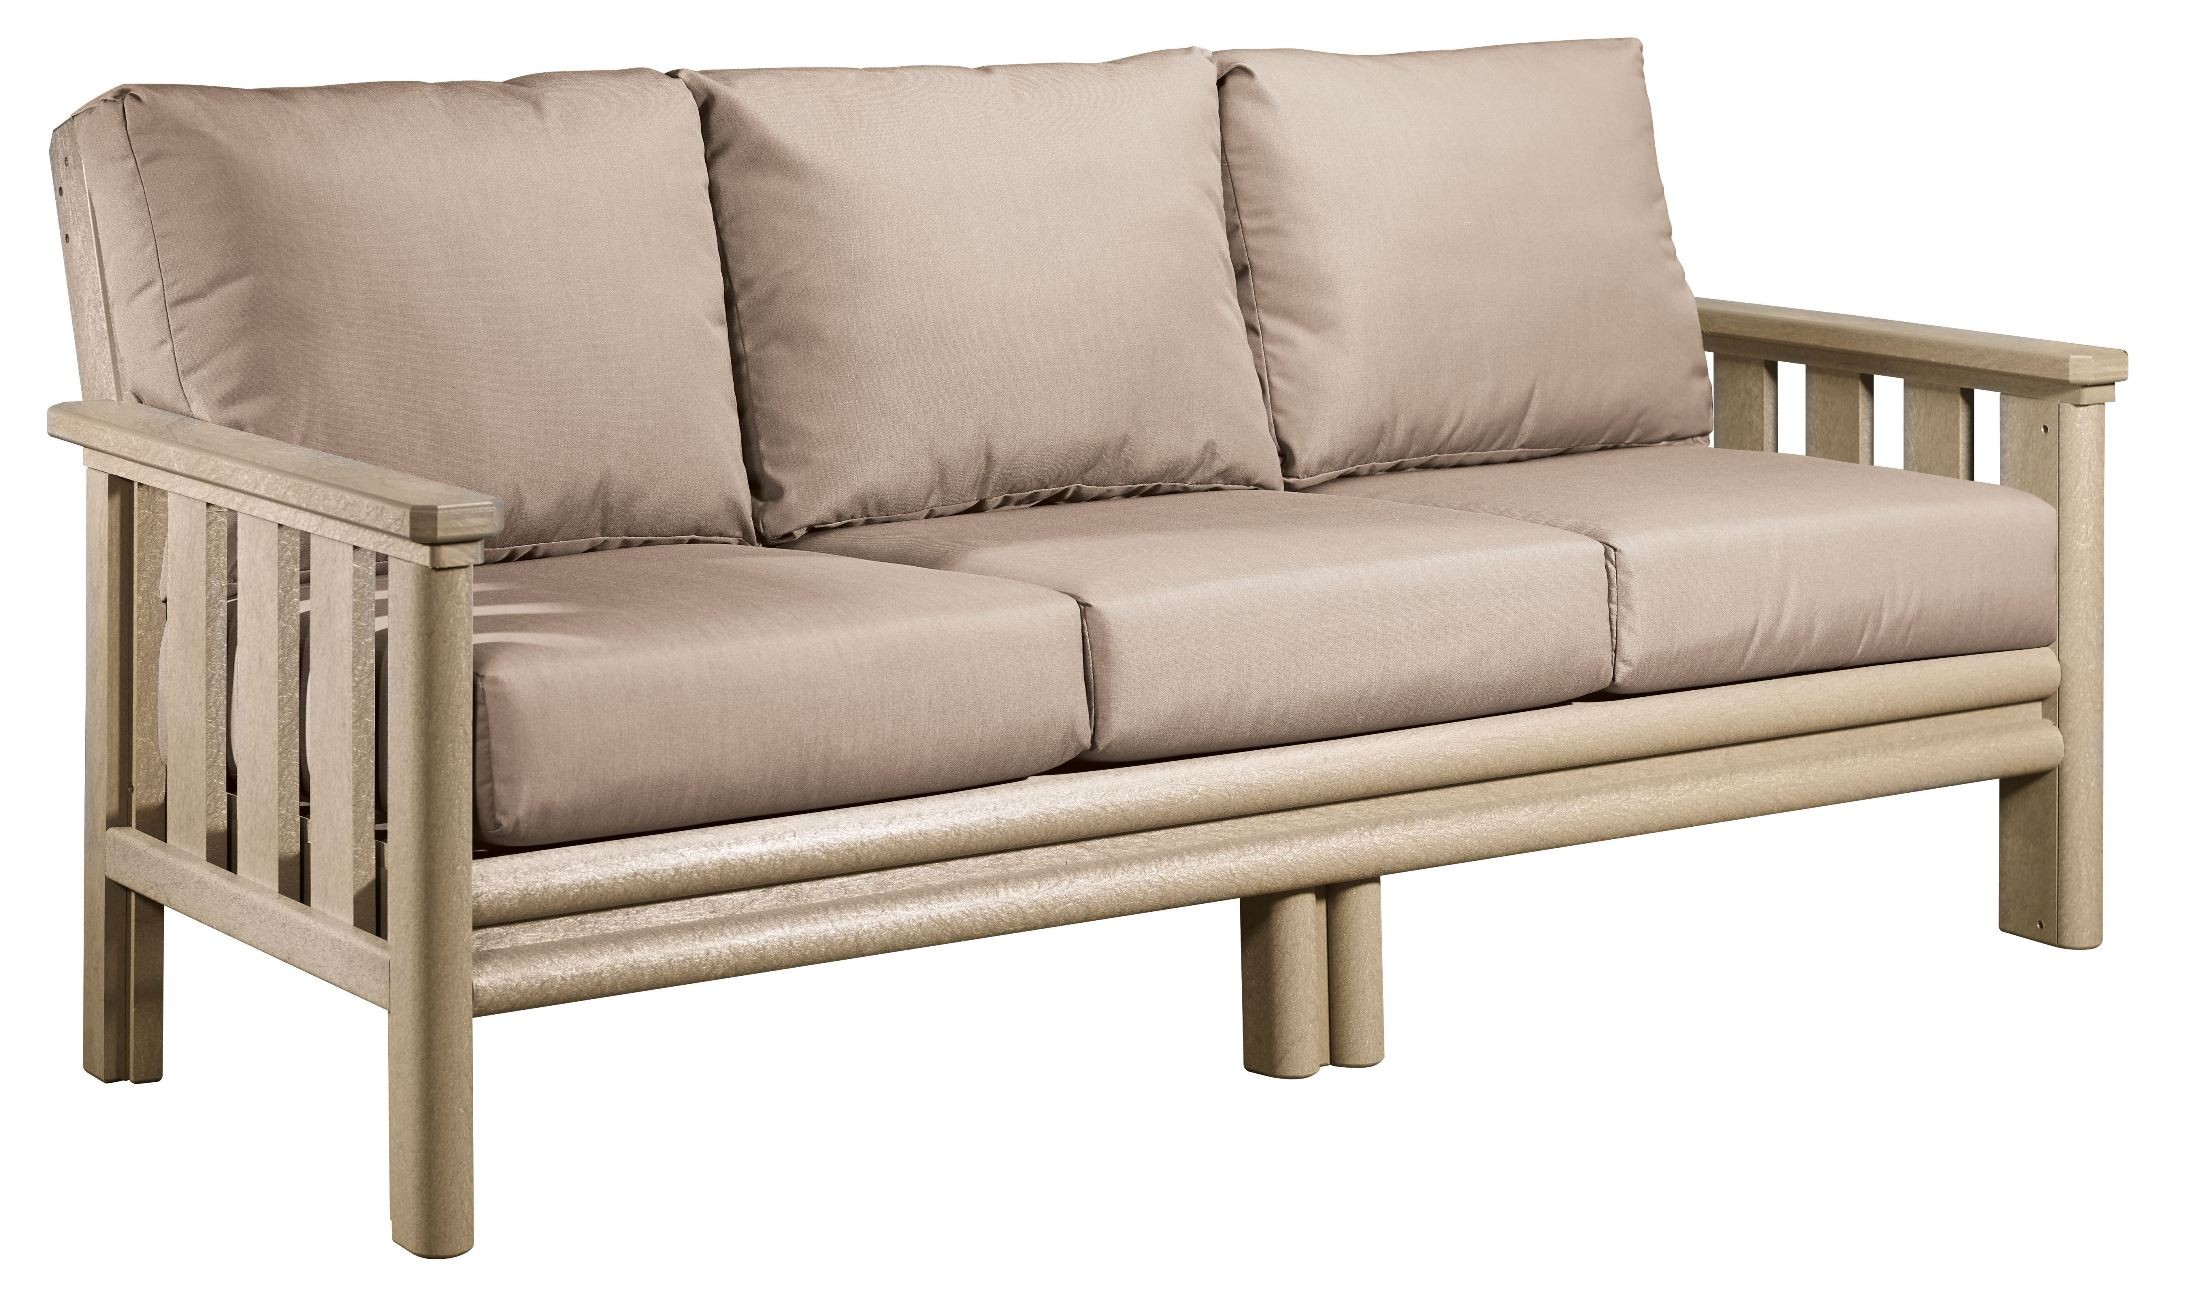 sunbrella sofa cushions cheap circle sofas stratford beige with from cr